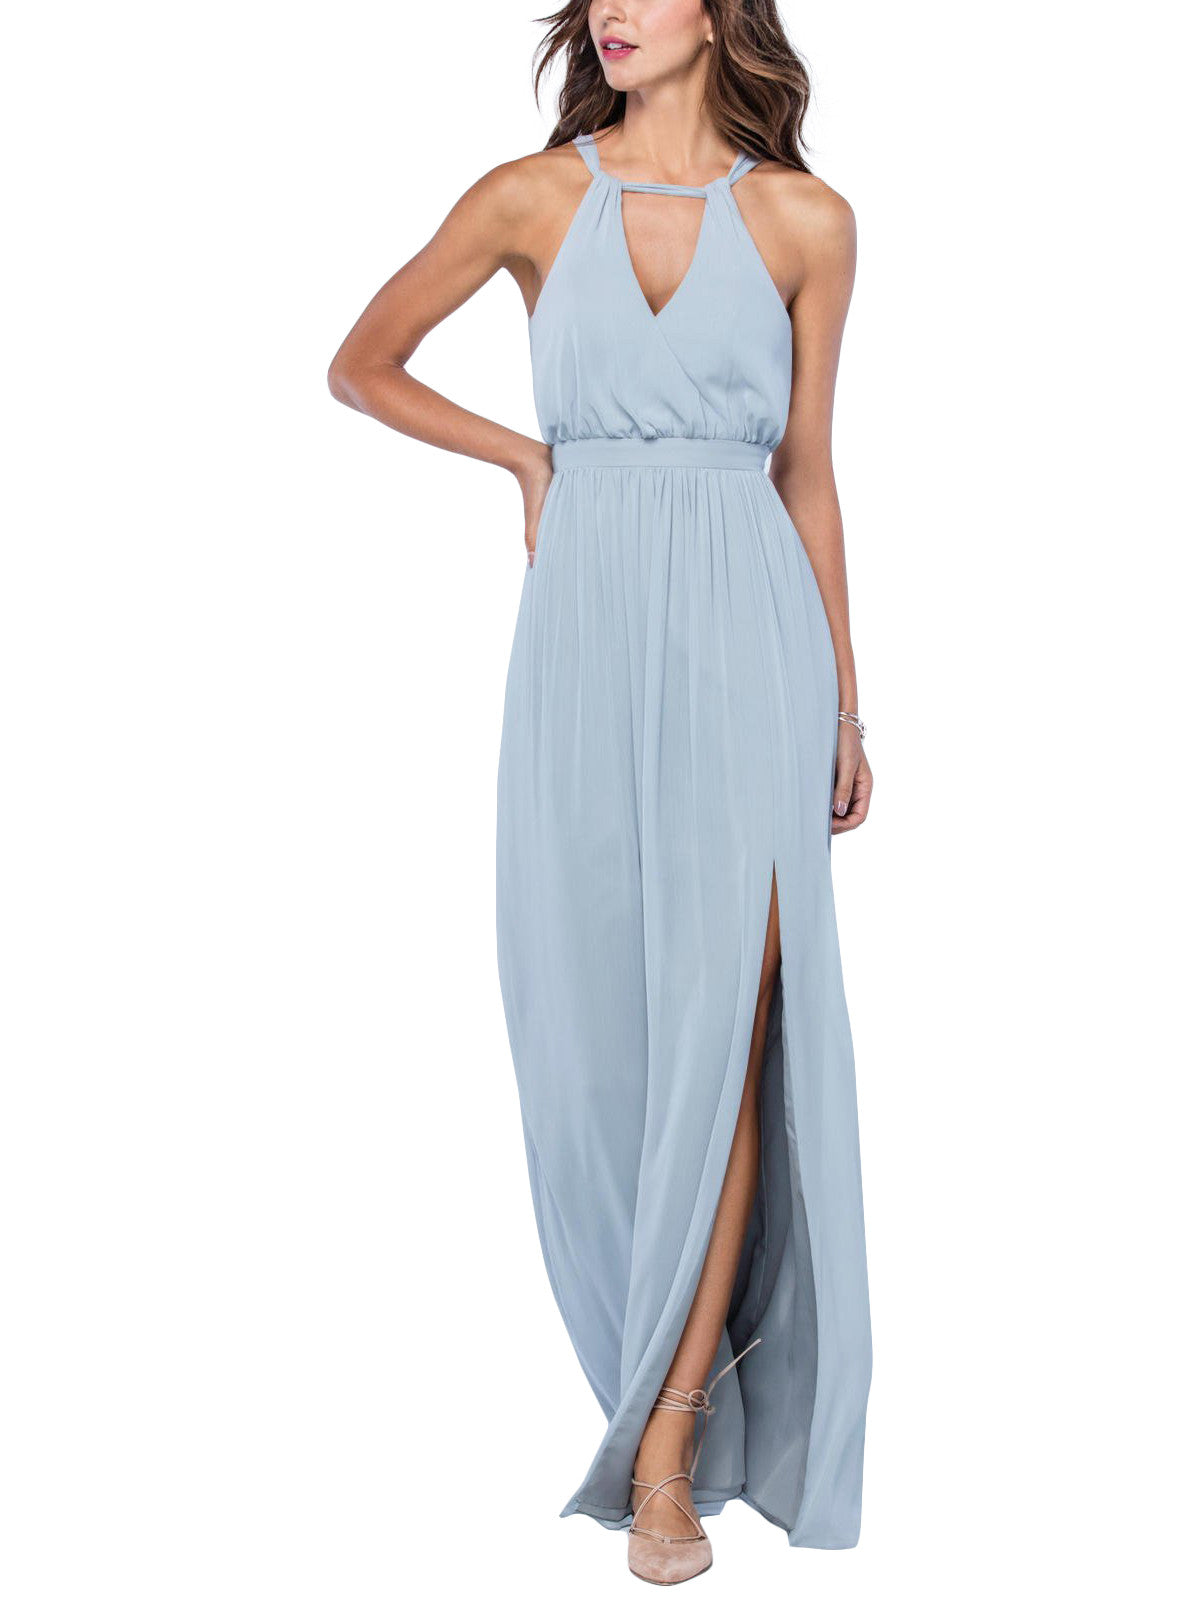 2055ffa65463 Watters Fleurette Bridesmaid Dress Bridesmaid Dress | Brideside